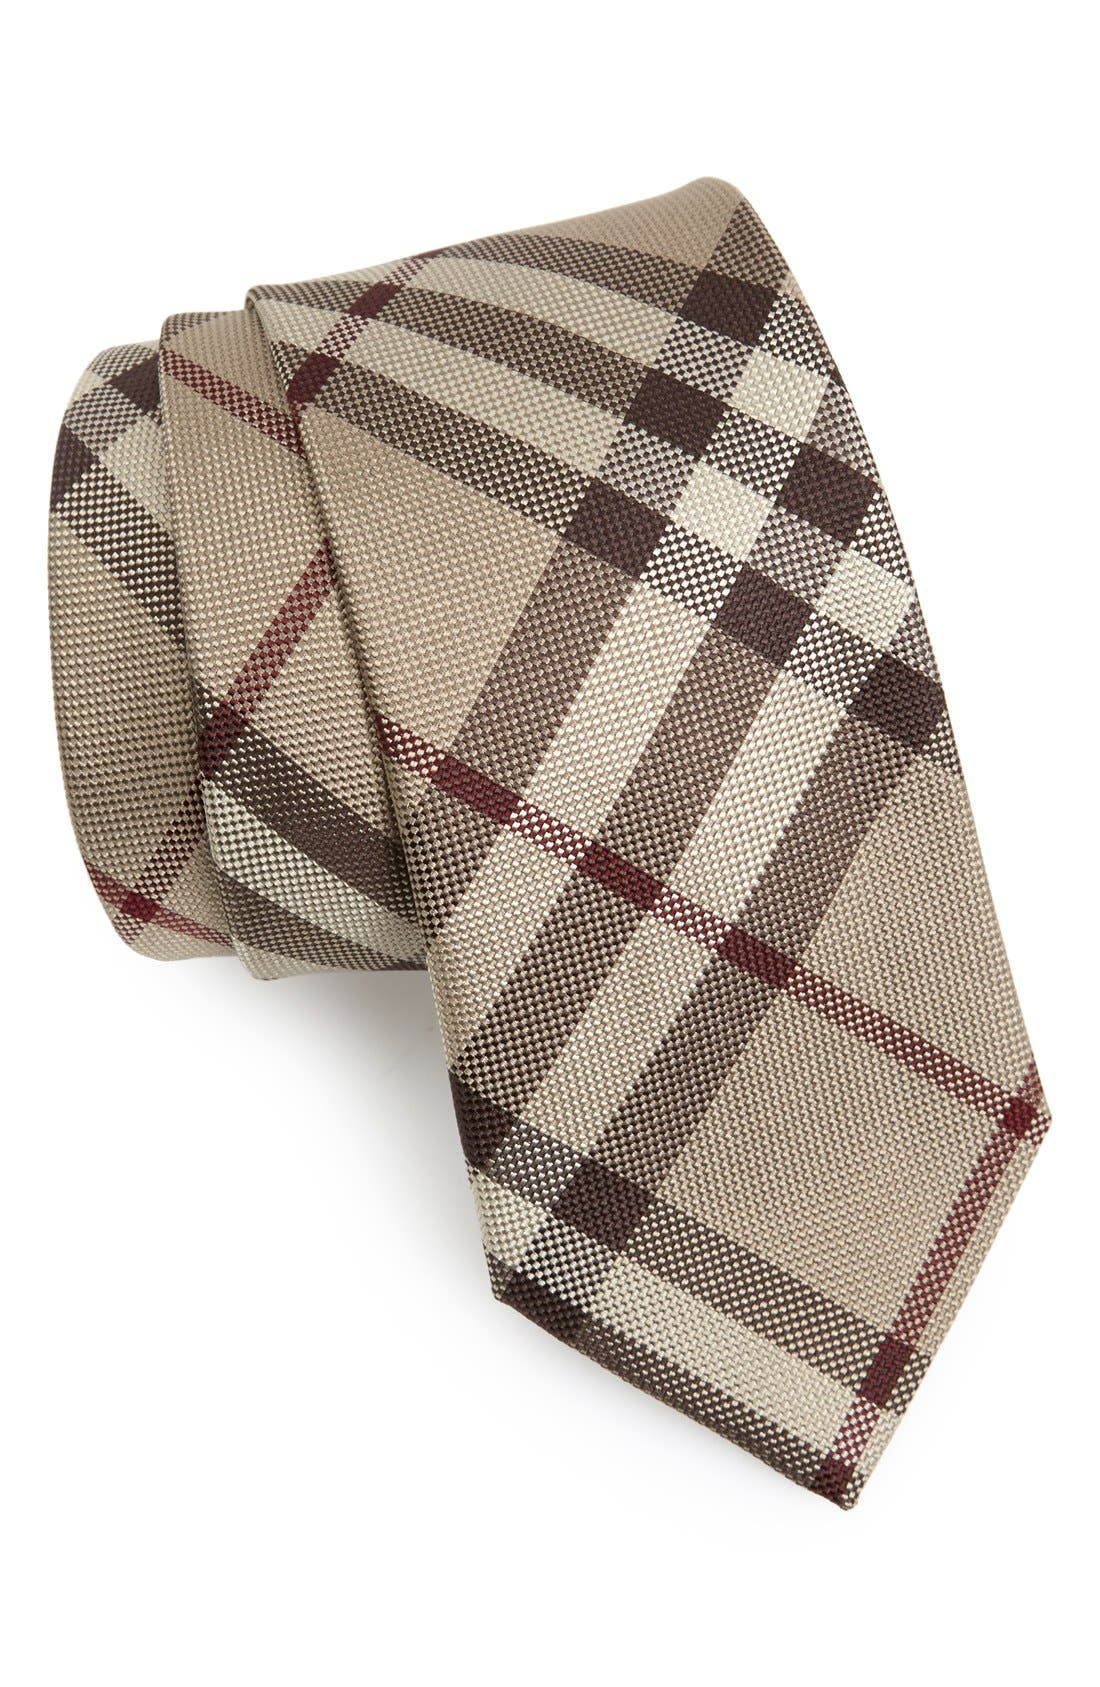 Alternate Image 1 Selected - Burberry Silk Tie